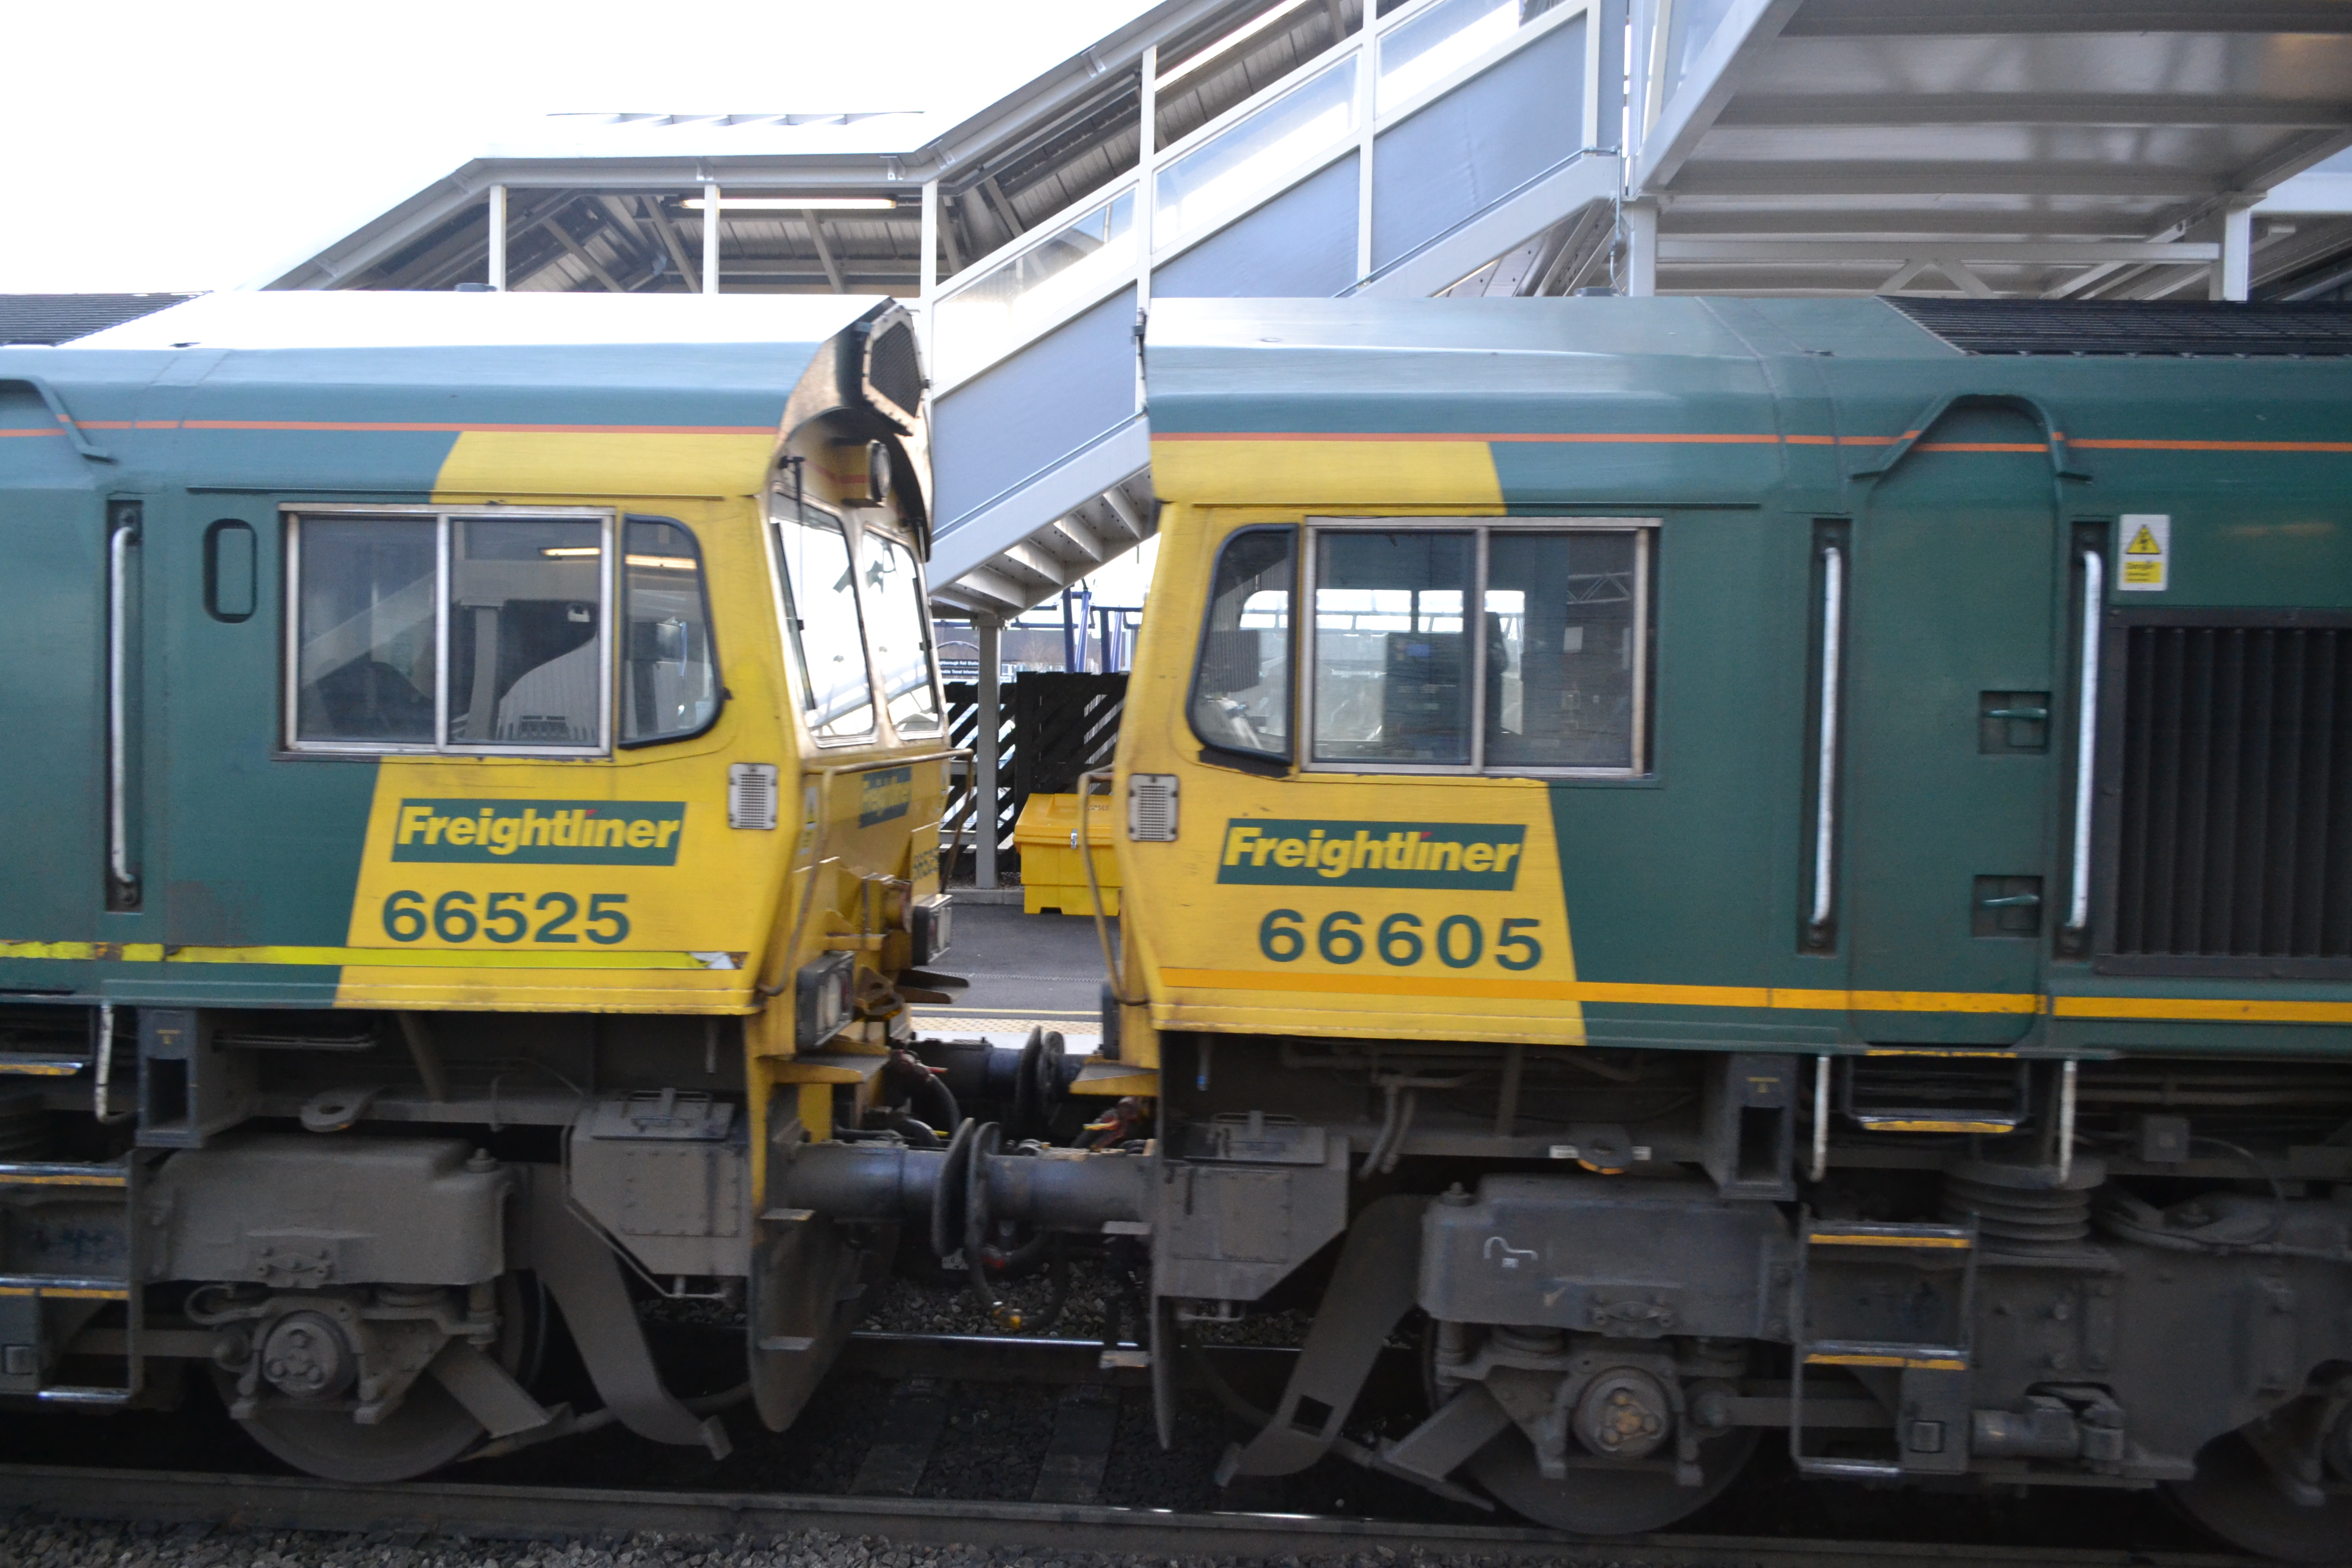 Class 66525 and Class 66605 by DingRawD